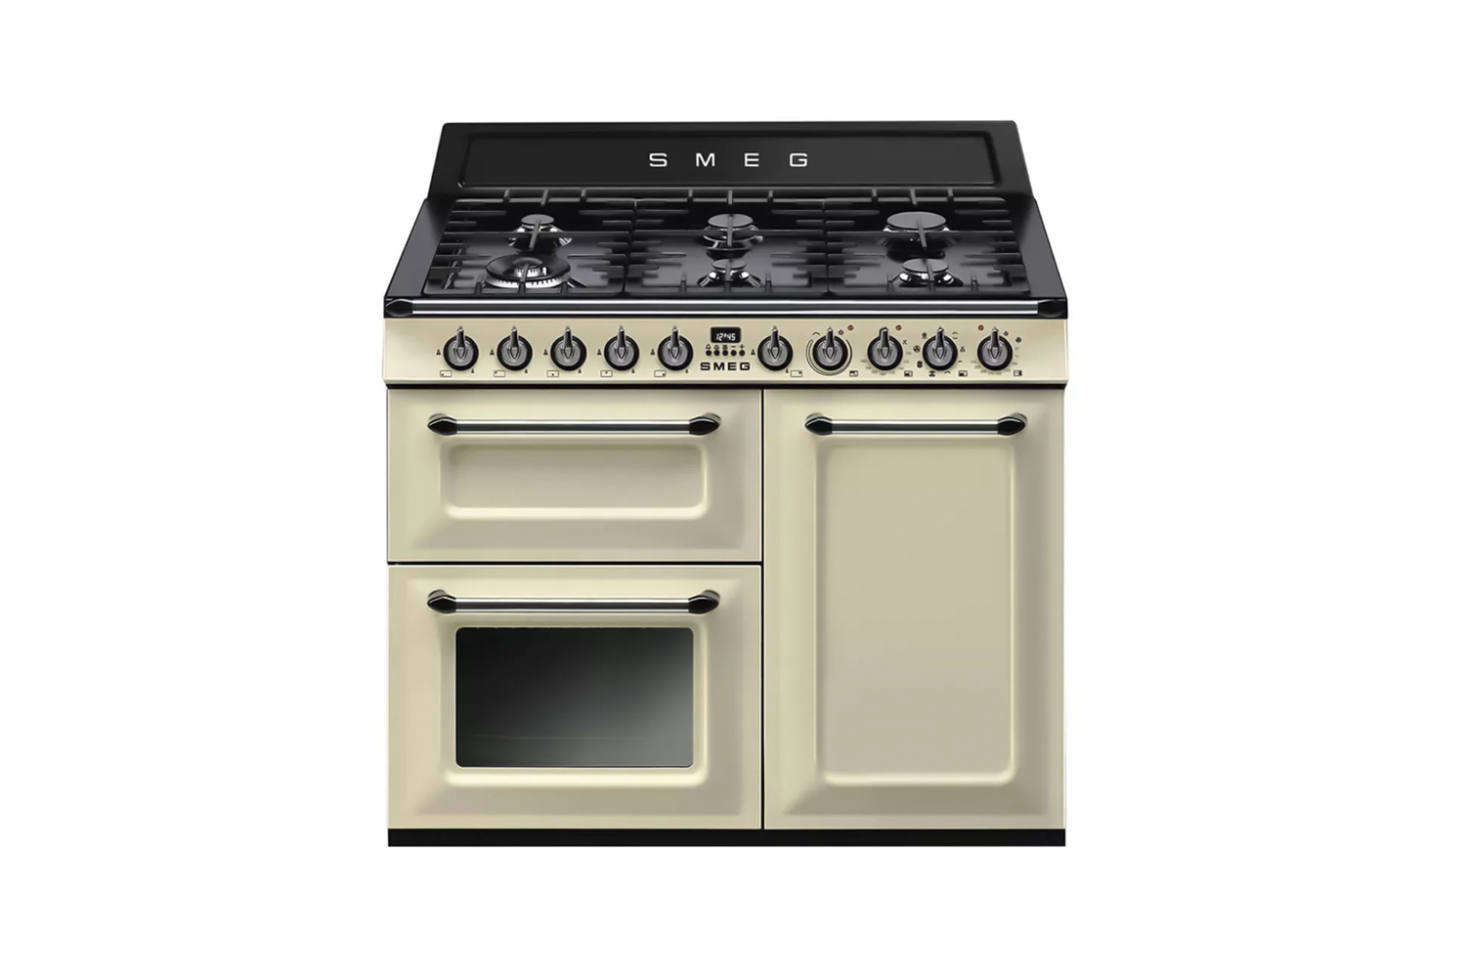 Smeg S Victoria Cooker Shown In Cream Is The Company Offering Of Retro Style